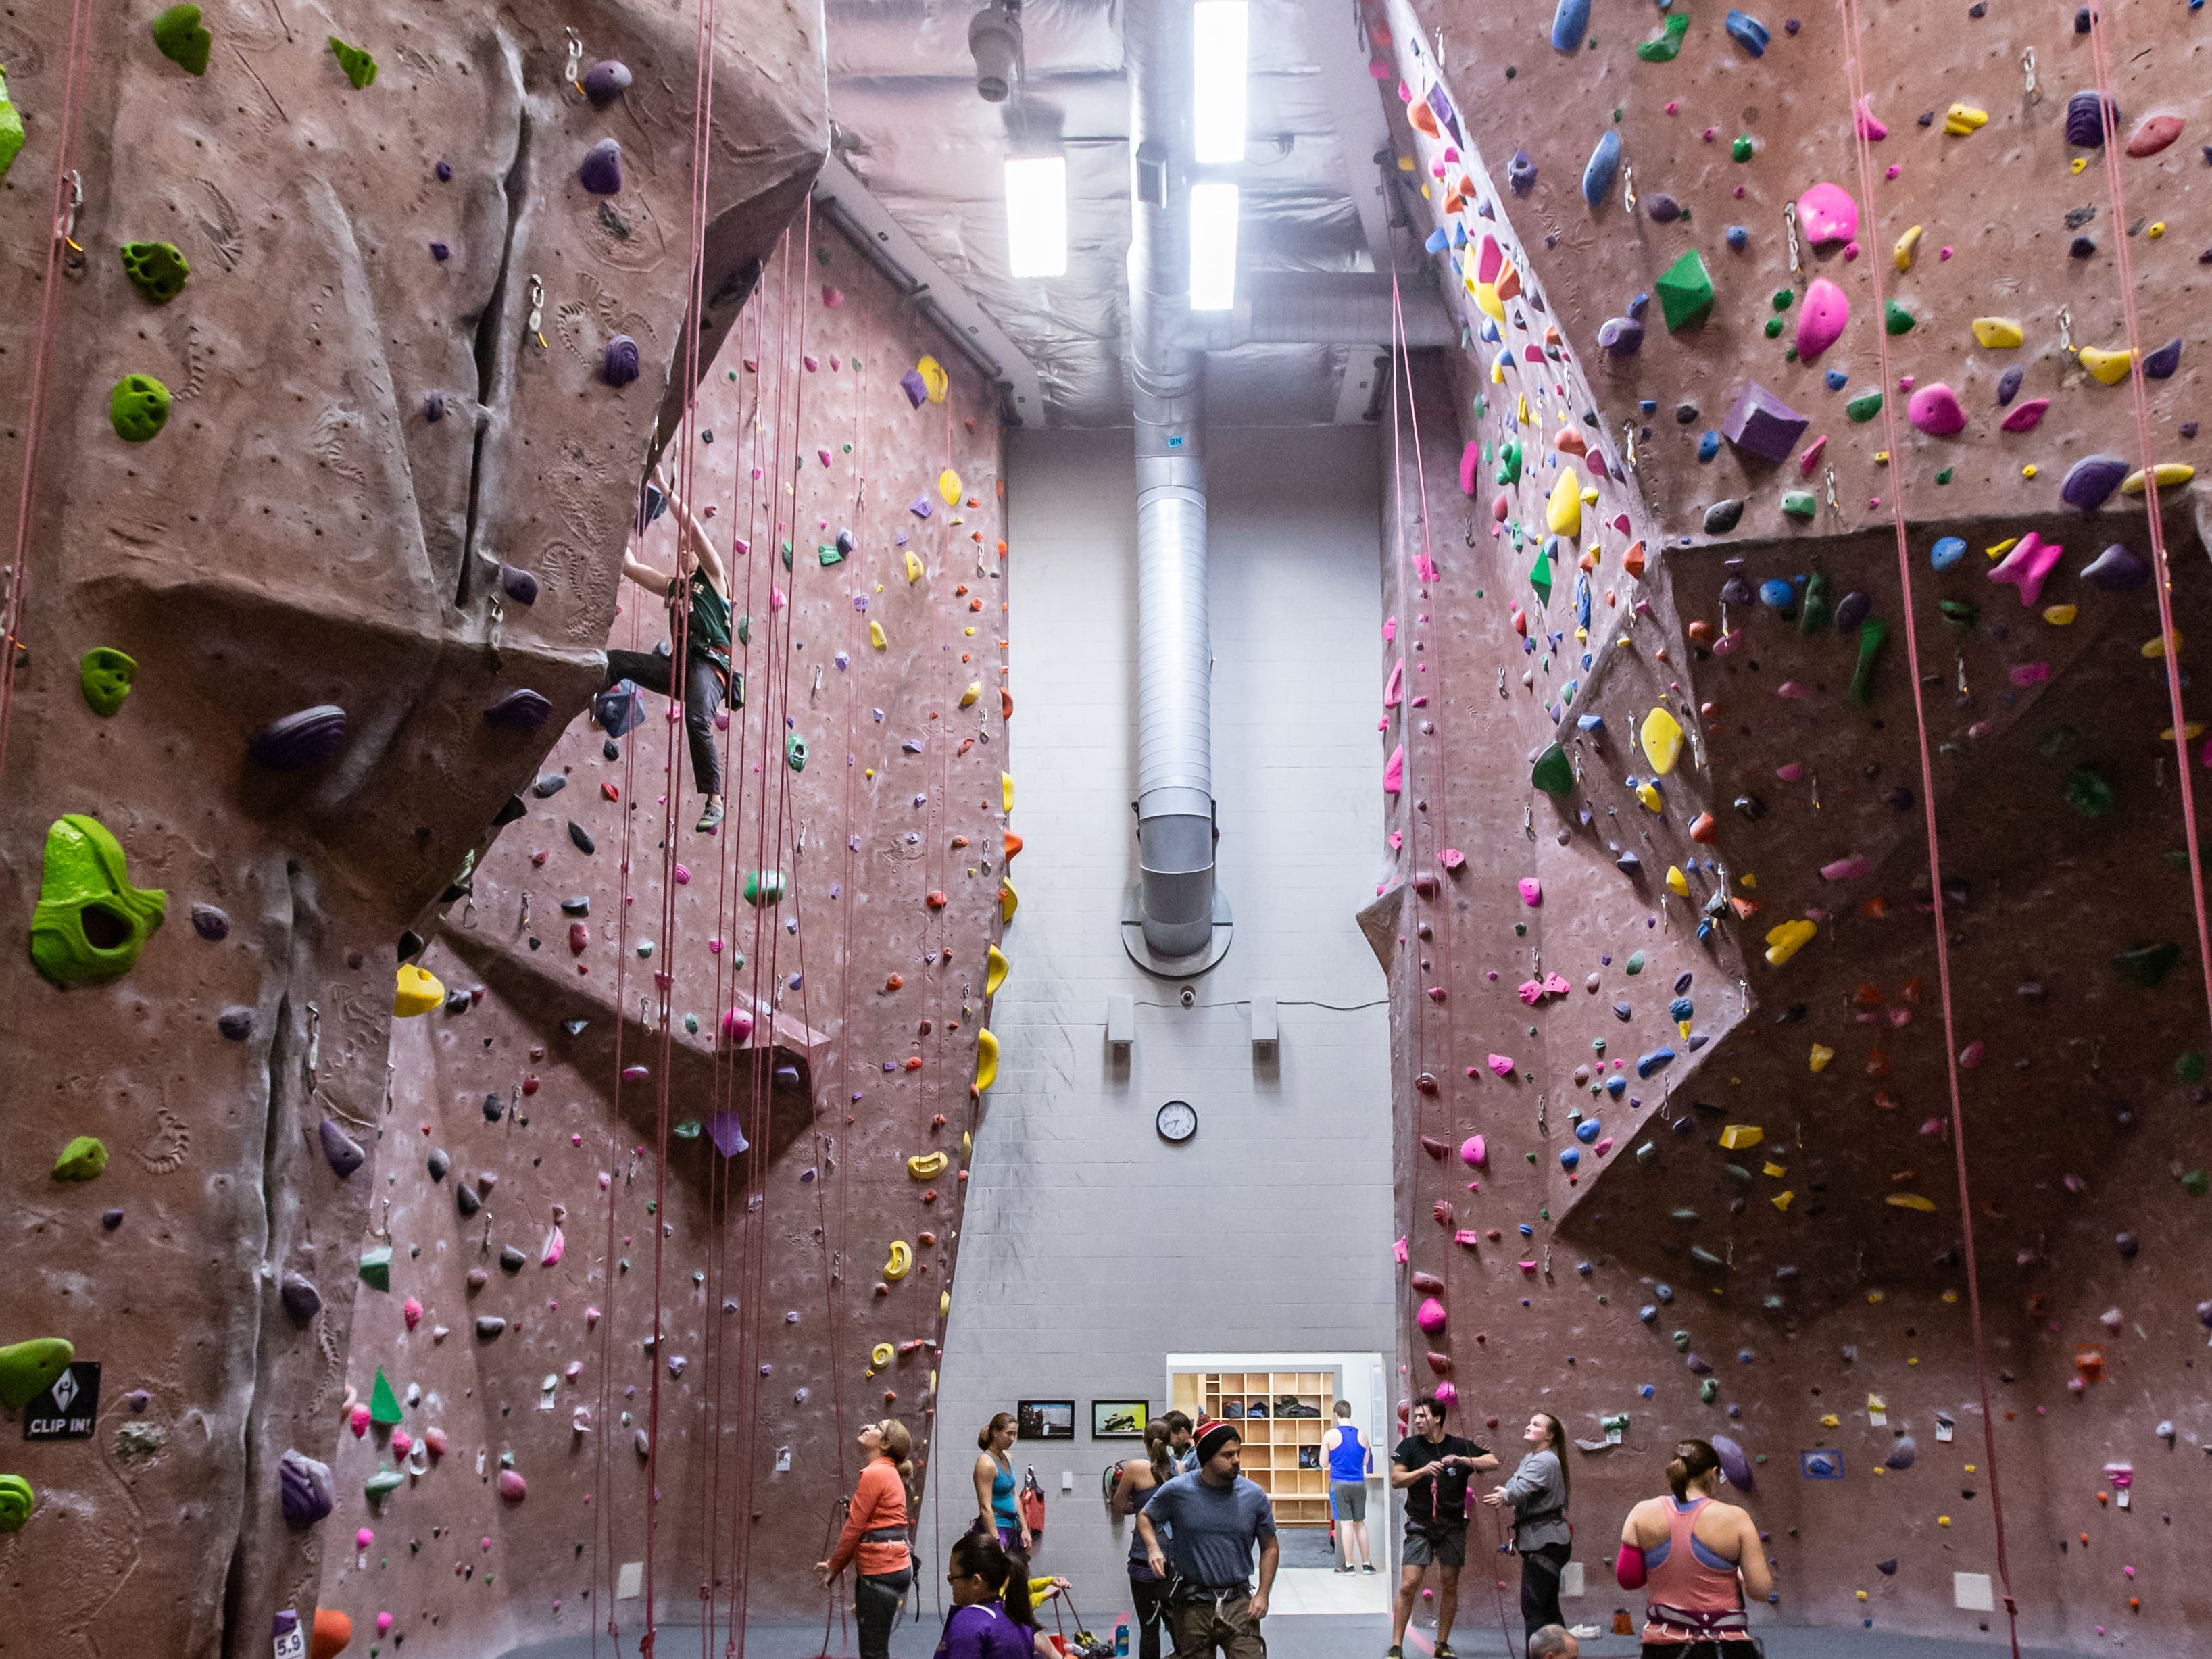 Adventure Rock locations in Brookfield and Milwaukee offer a variety of climbing surfaces with varying difficulties for local high school teams to hone their skills on.